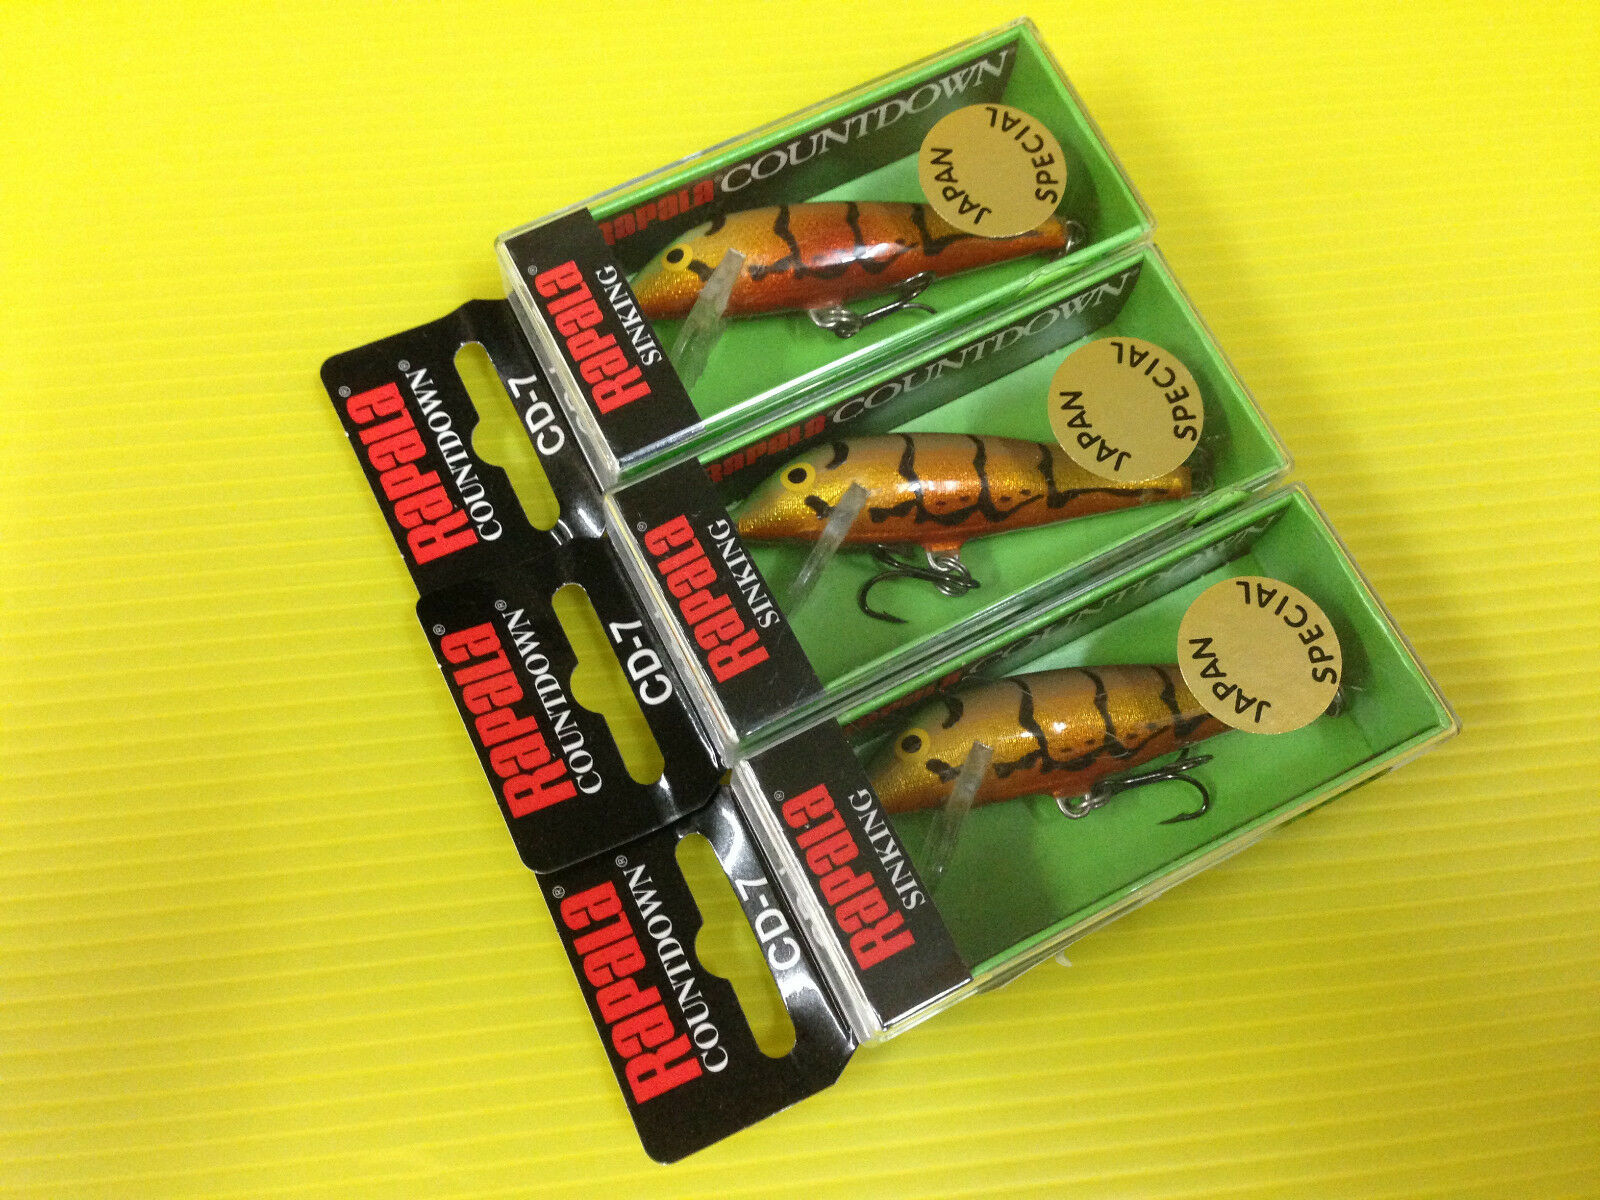 Three Rapala Countdown CD-7 JGBR Japan Special color Minnow Fishing  Lures.  more affordable